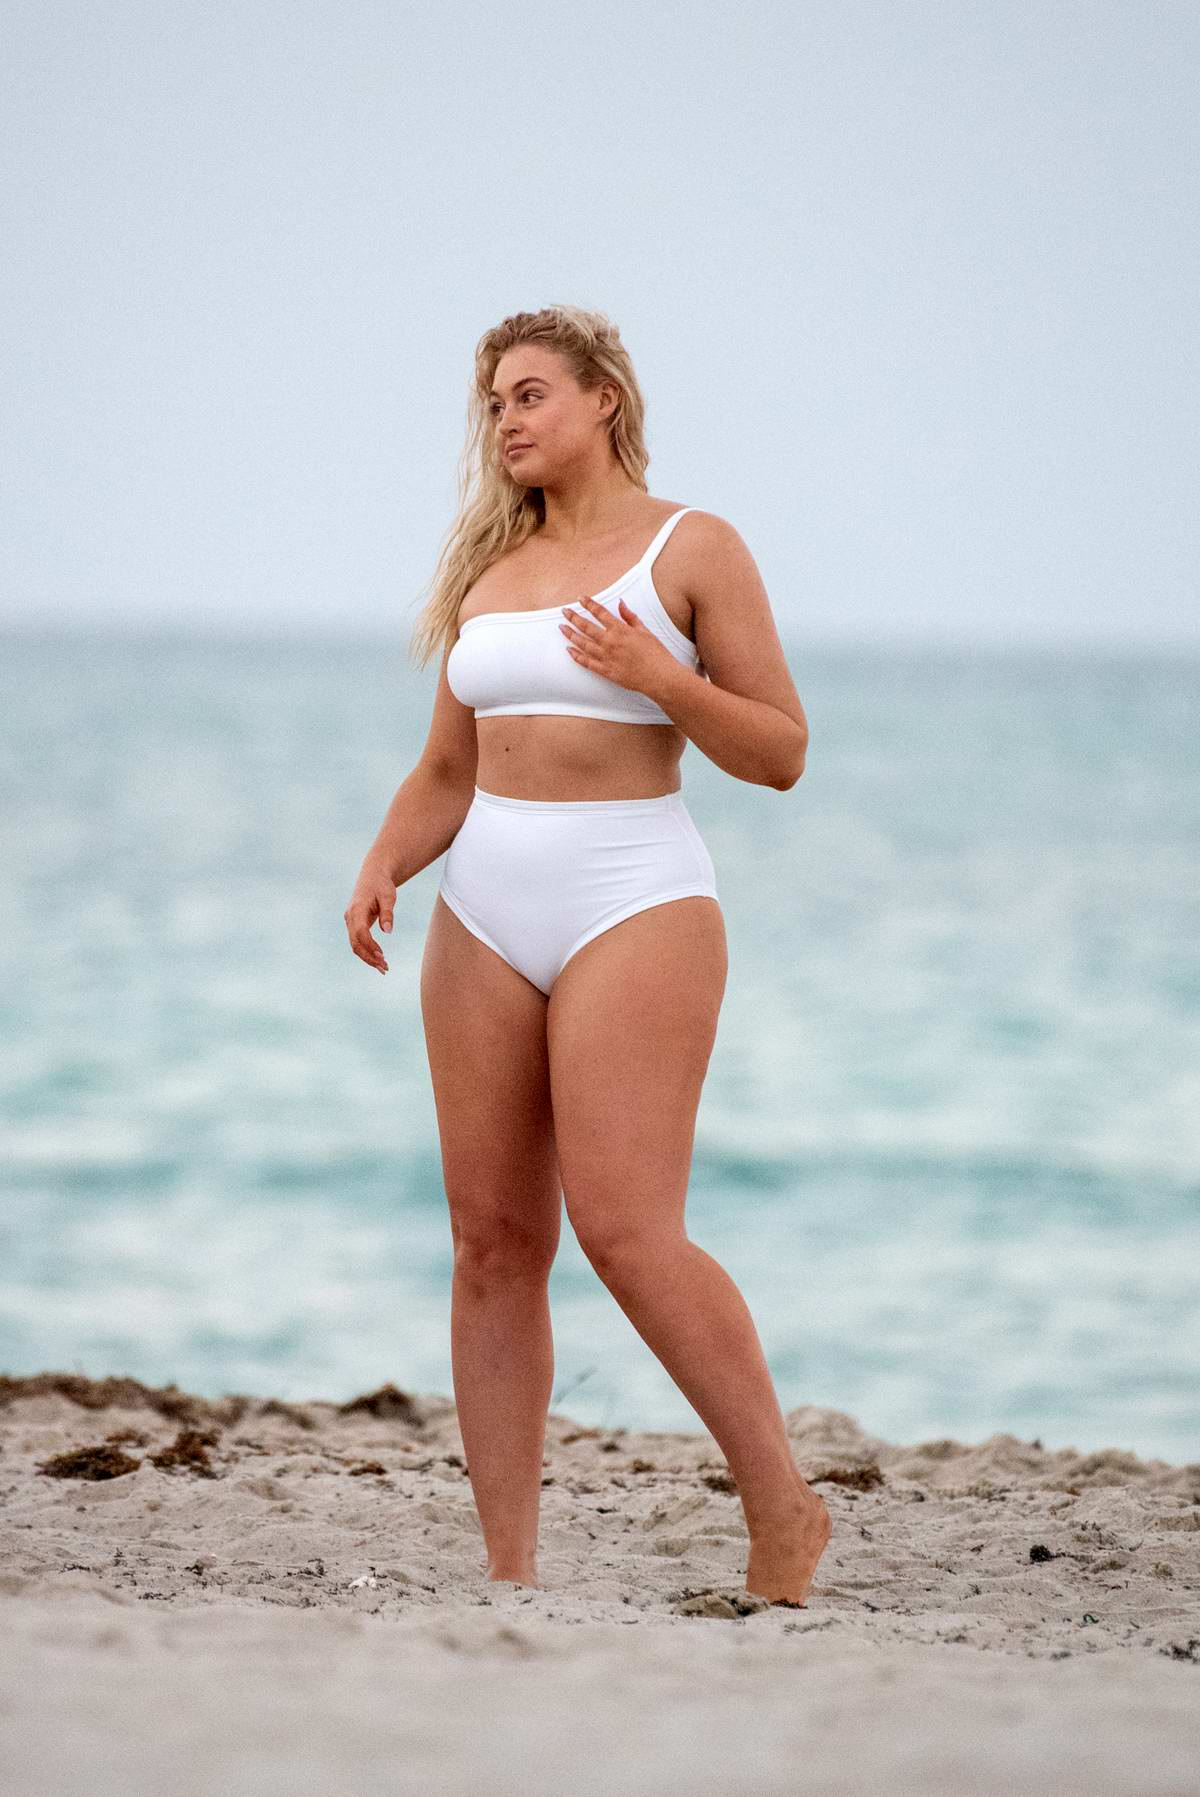 Iskra Lawrence sports a white bikini during a night photoshoot in Miami Beach, Florida